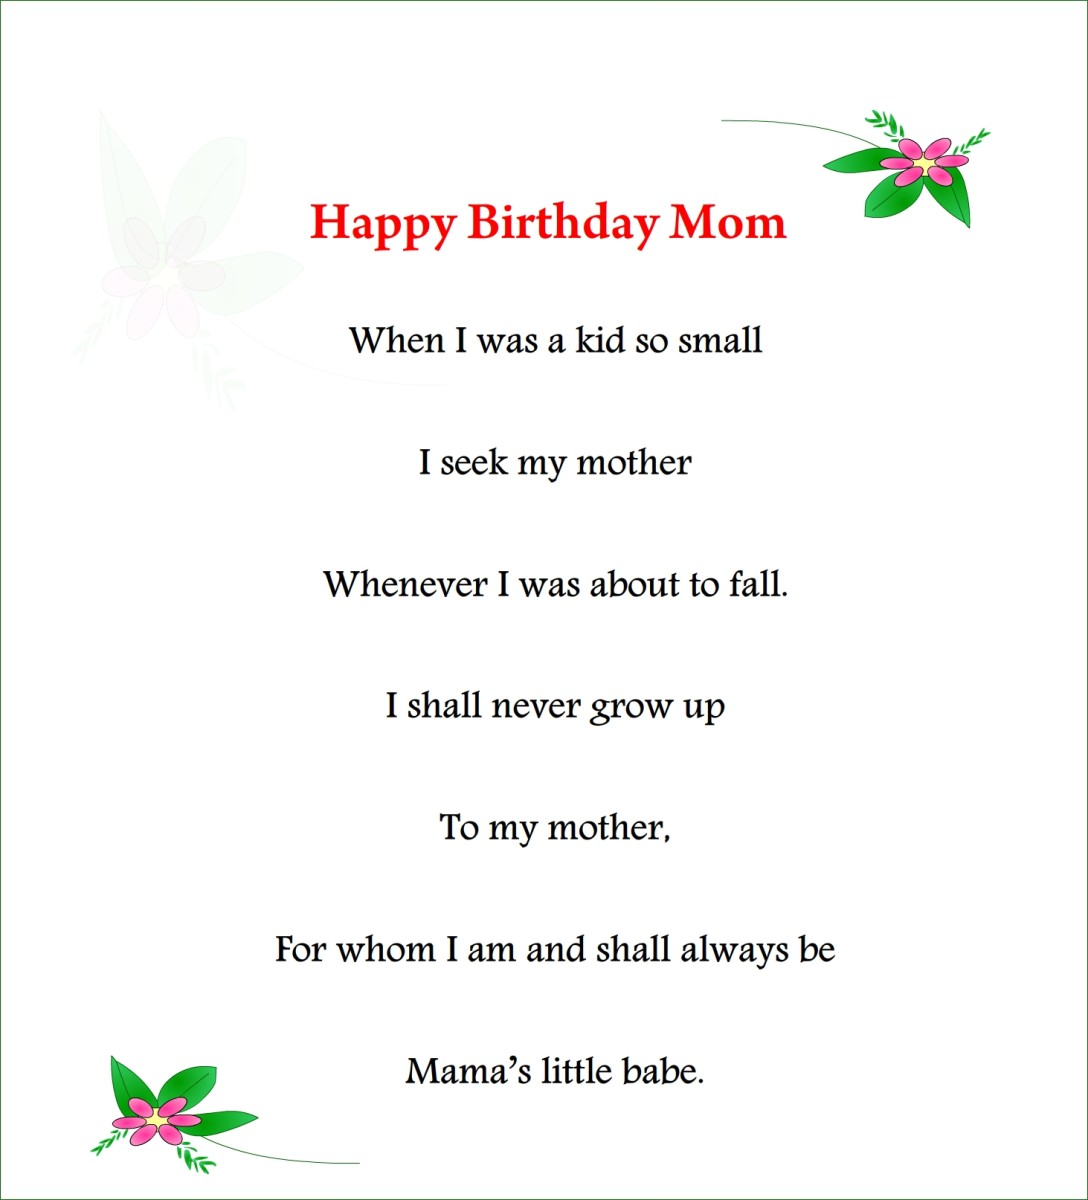 Happy birthday mom poem